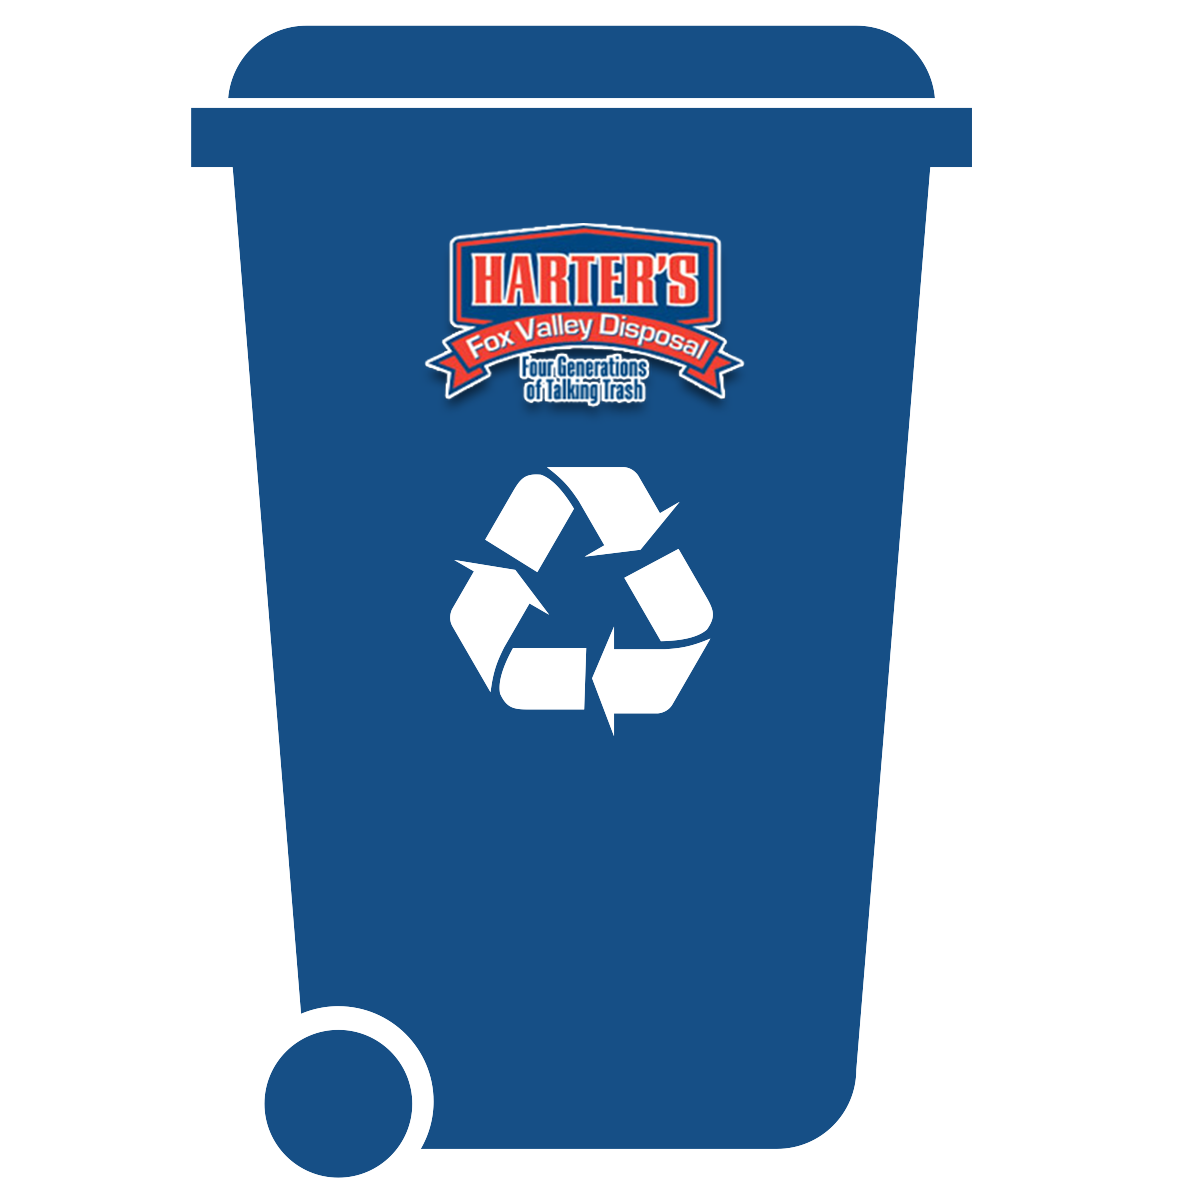 harters_recycle_icon.png